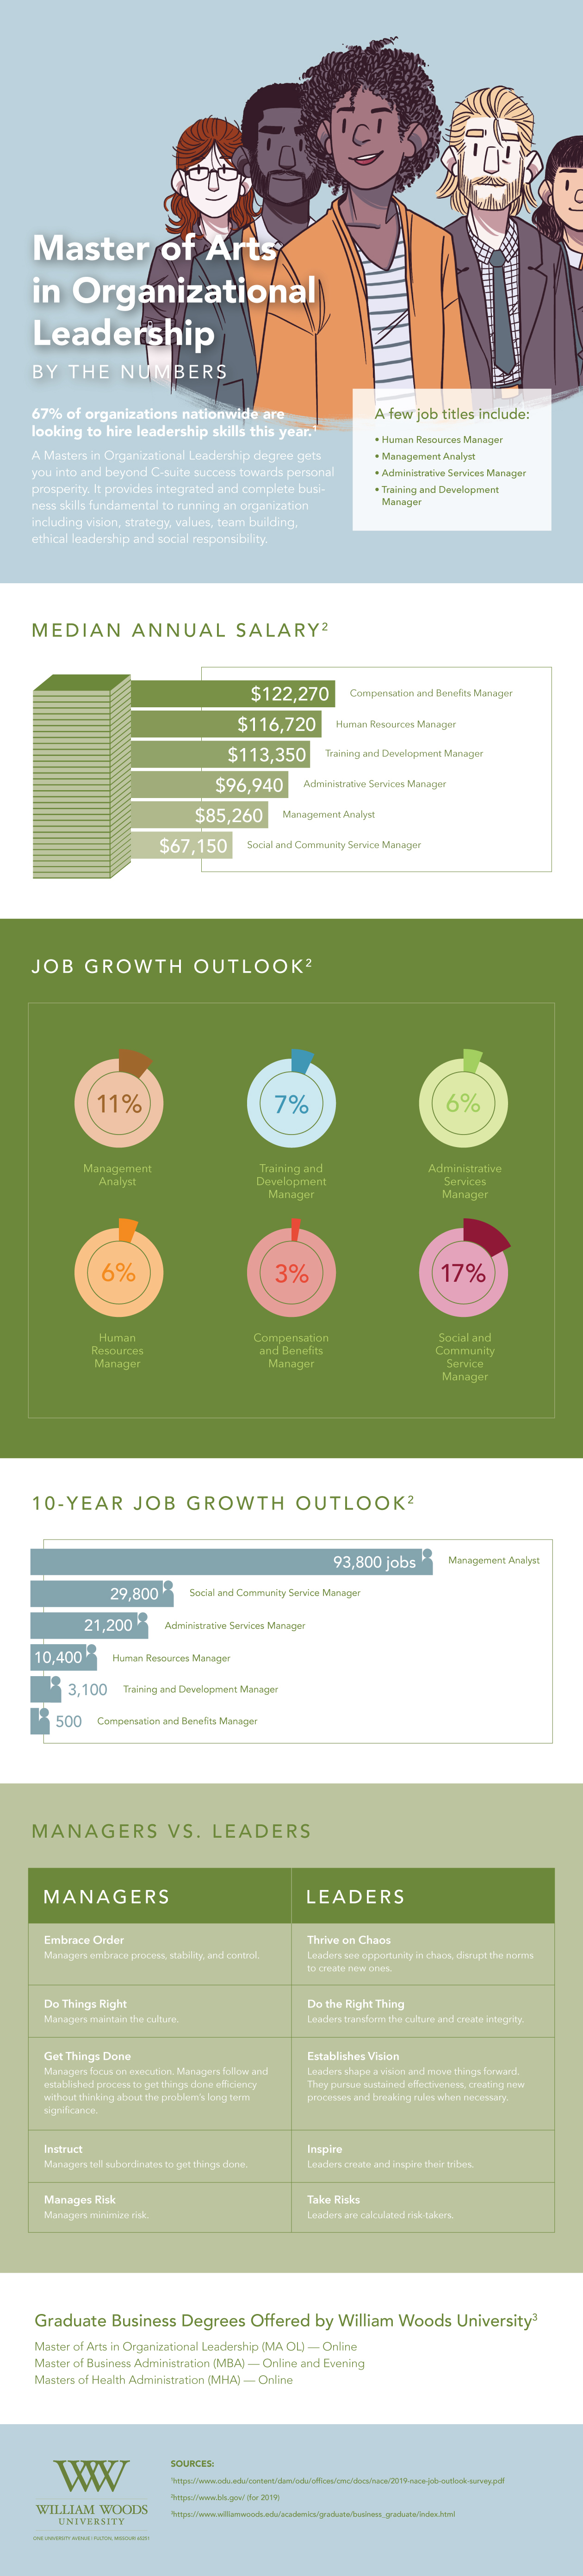 Master of Arts in Organizational Leadership Infographic about career, salary and job outlook numbers